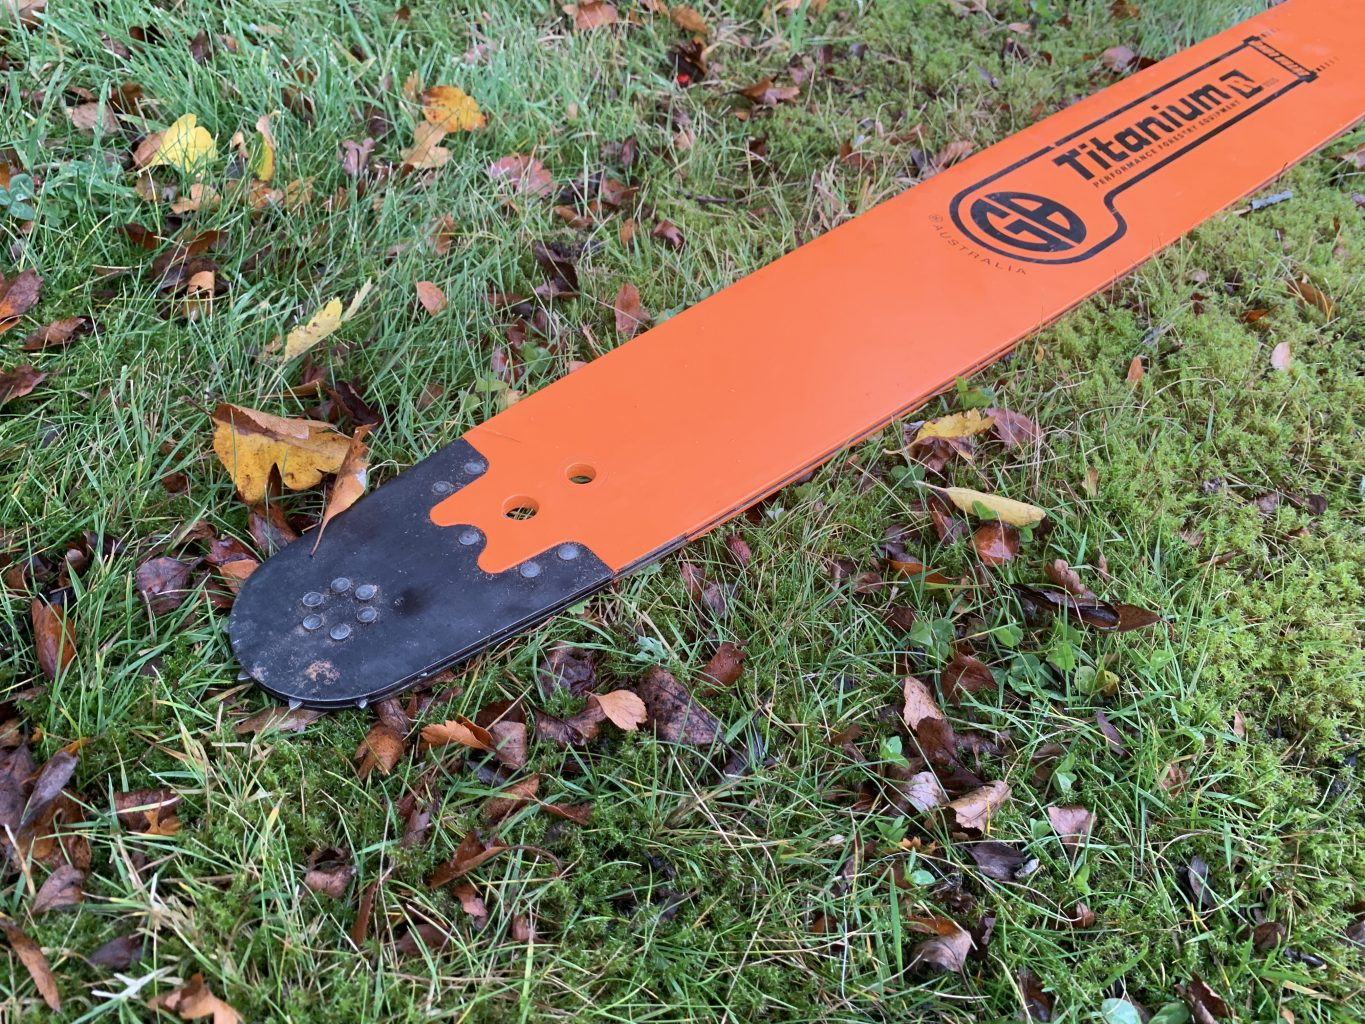 "HSS84-63RQ 84""[212cm] GB Slotted Extra Long 8 Foot Bar for Stihl 050, 051, 070, 075, 076, 08, 090, 088, MS880 .404 .063 222 drive links"